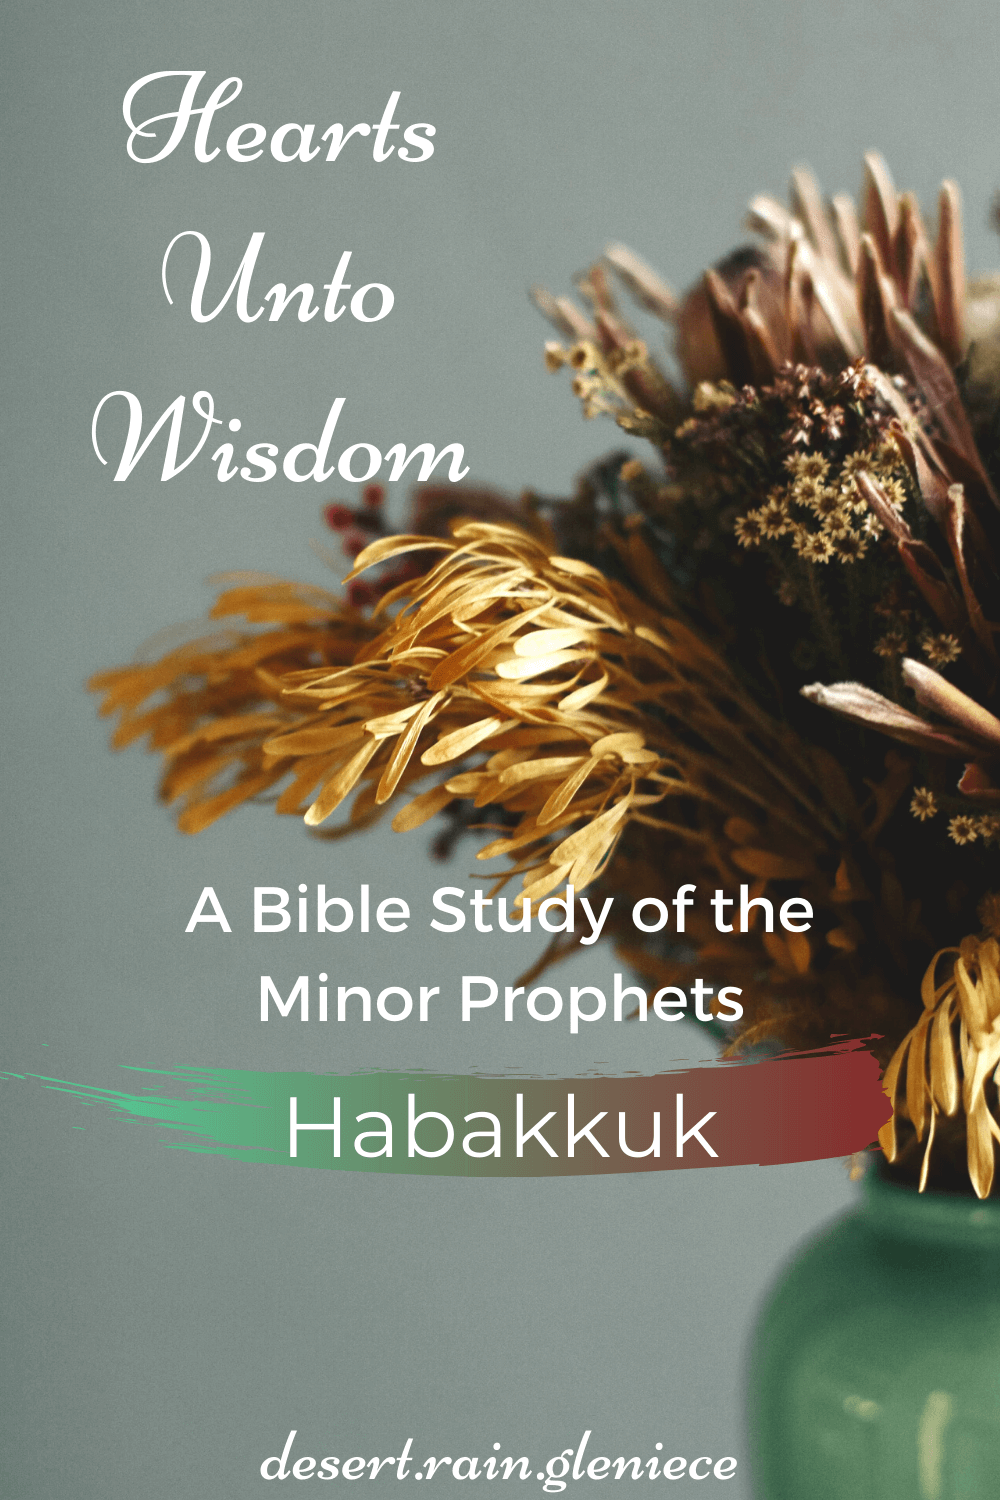 Are you surrounded by hard losses and dead dreams? Habakkuk poses this question: if everything that once brought you joy is gone, will you still praise God? #habakkuk, #minorprophets, #biblestudyforwomen, #sorrow